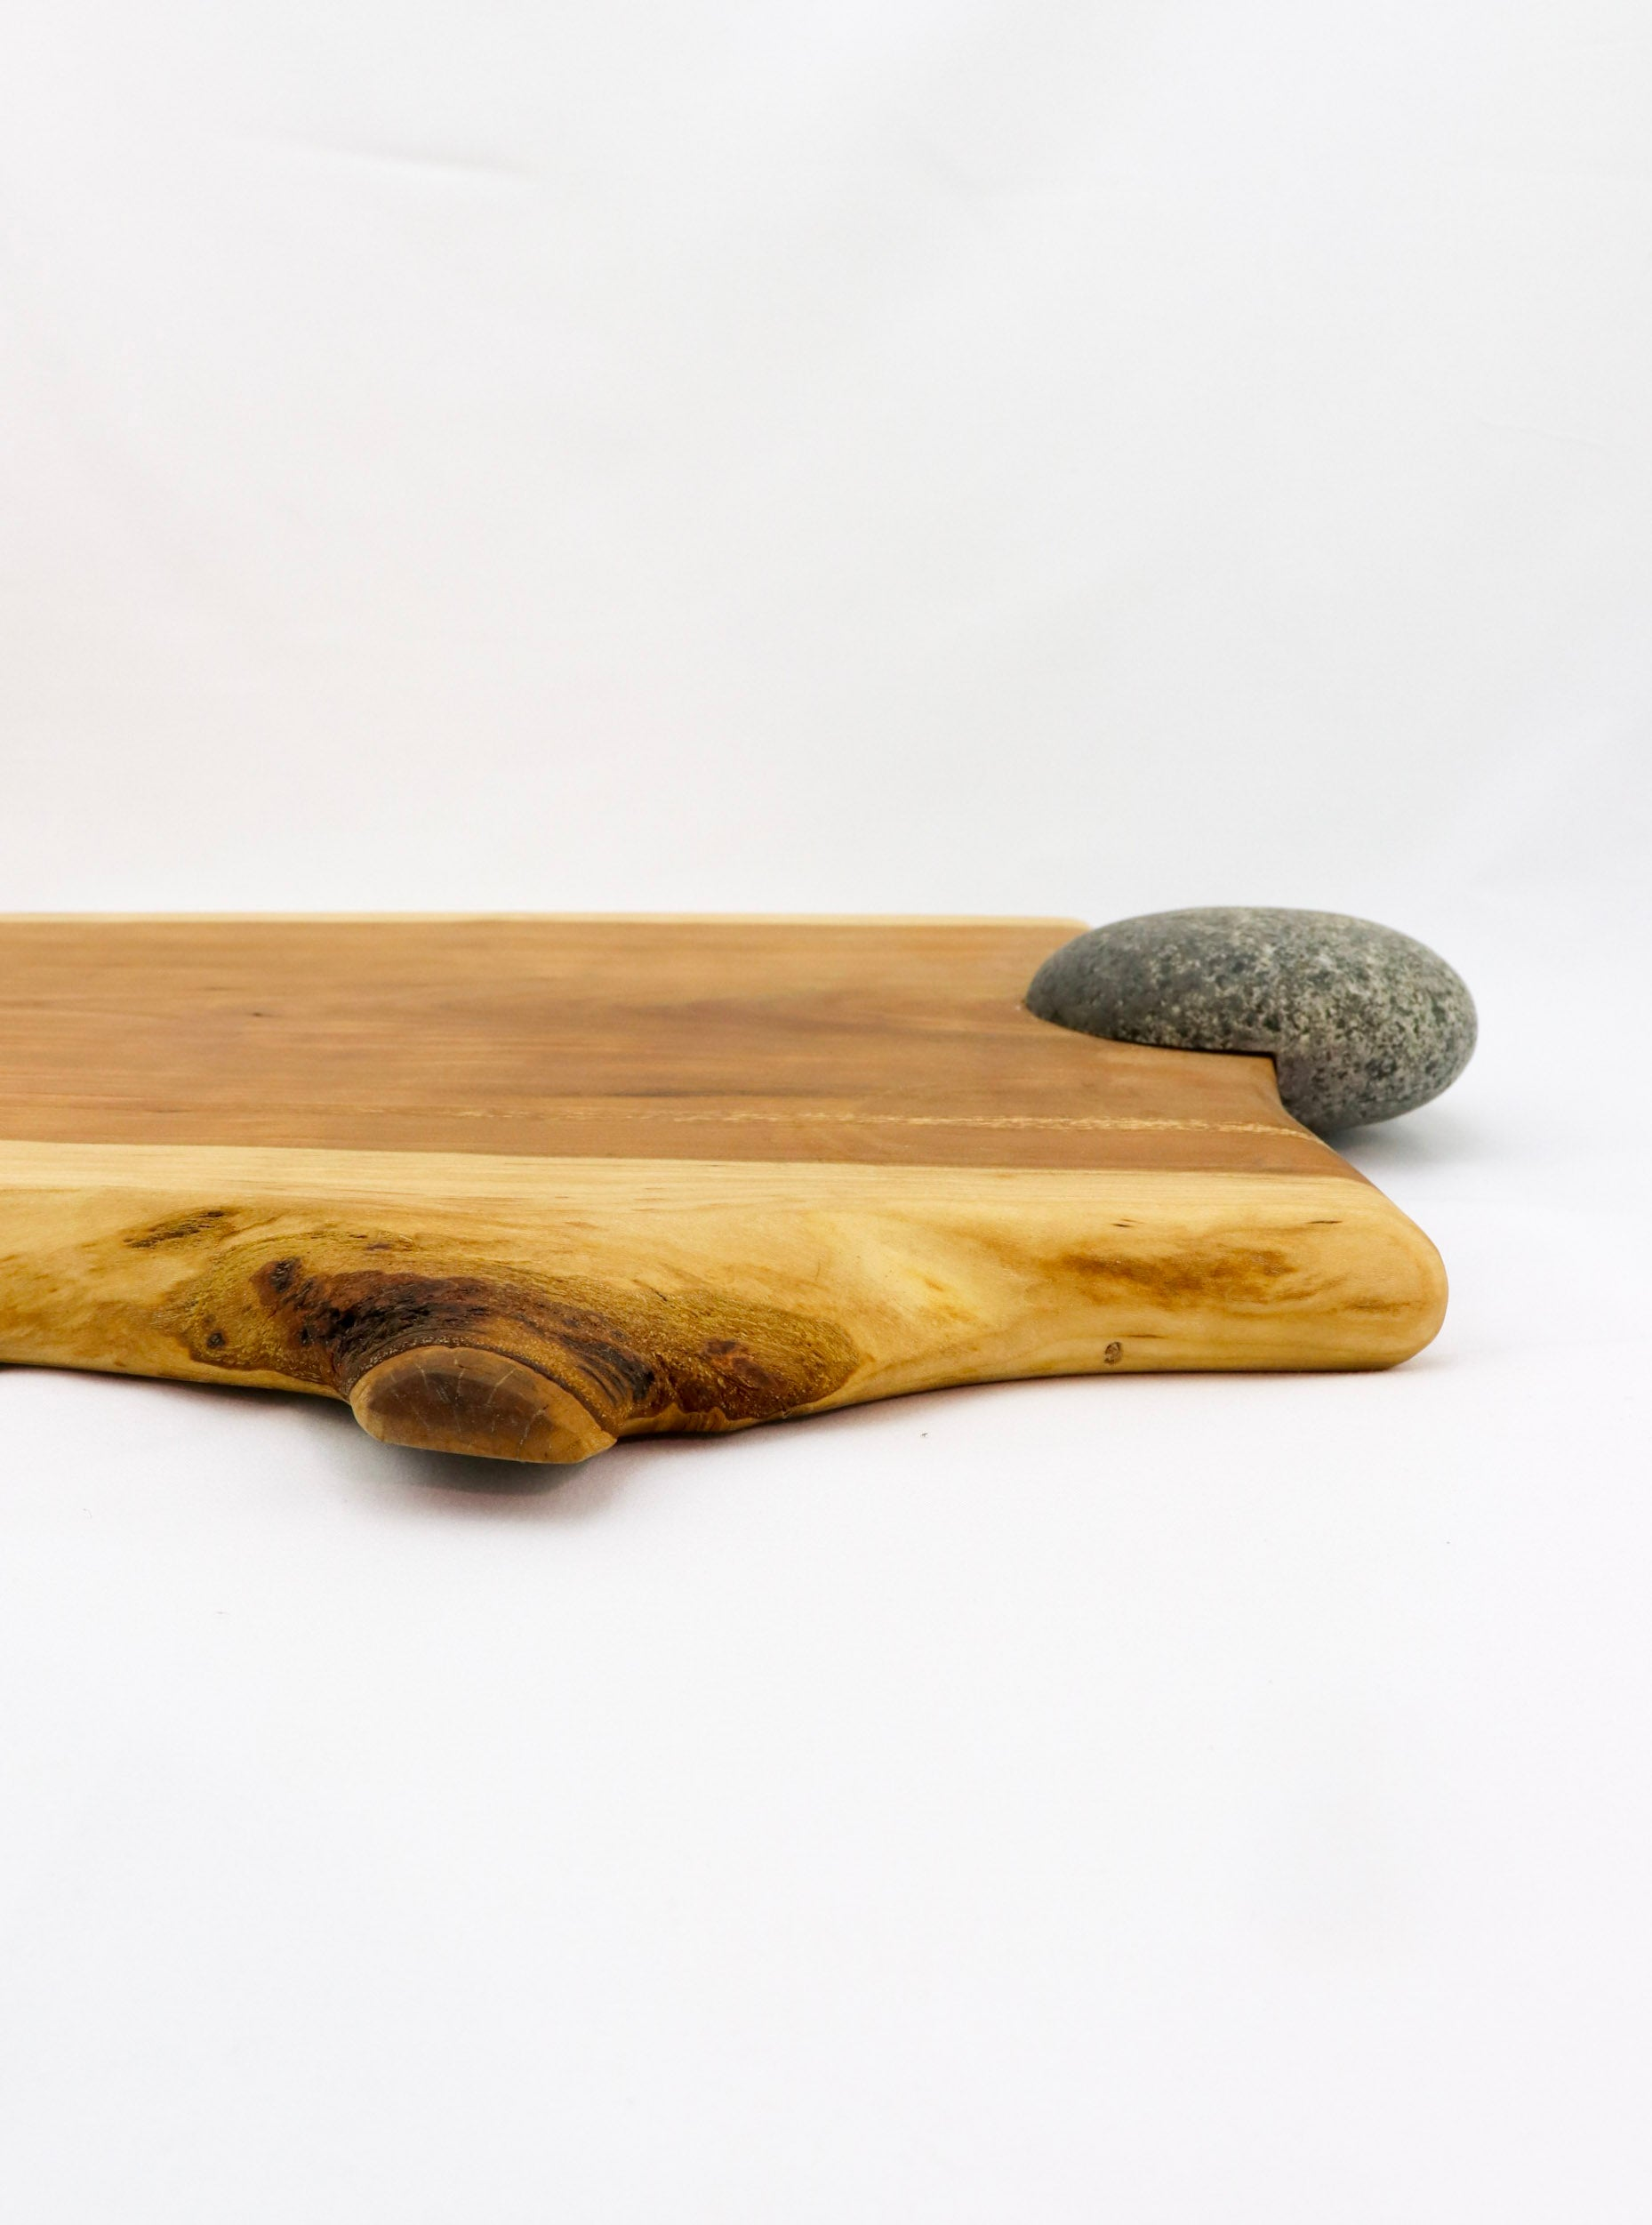 Stone & Wood Serving Board